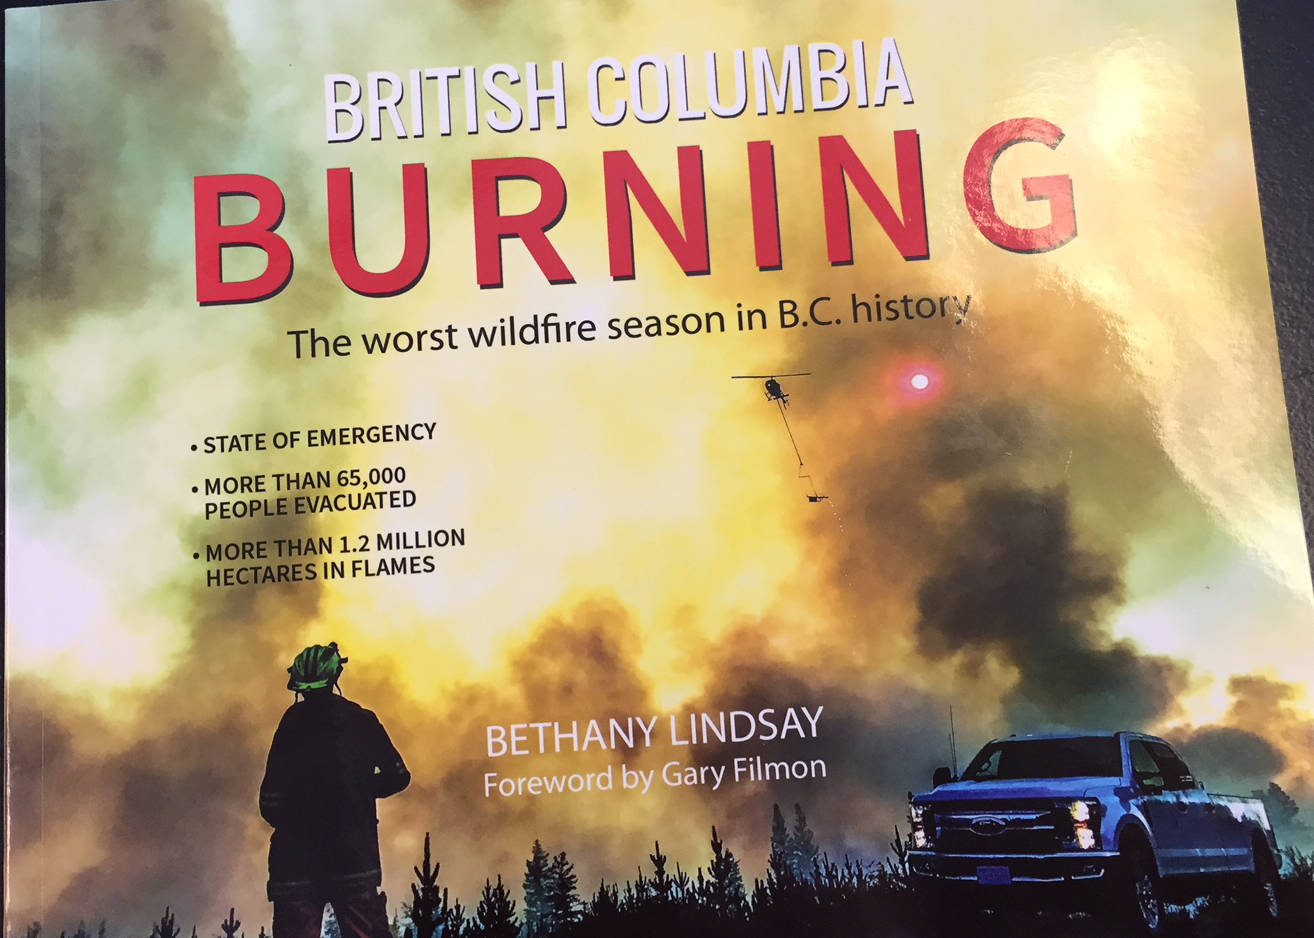 B.C.'s devastating 2017 wildfire season revisited in new book